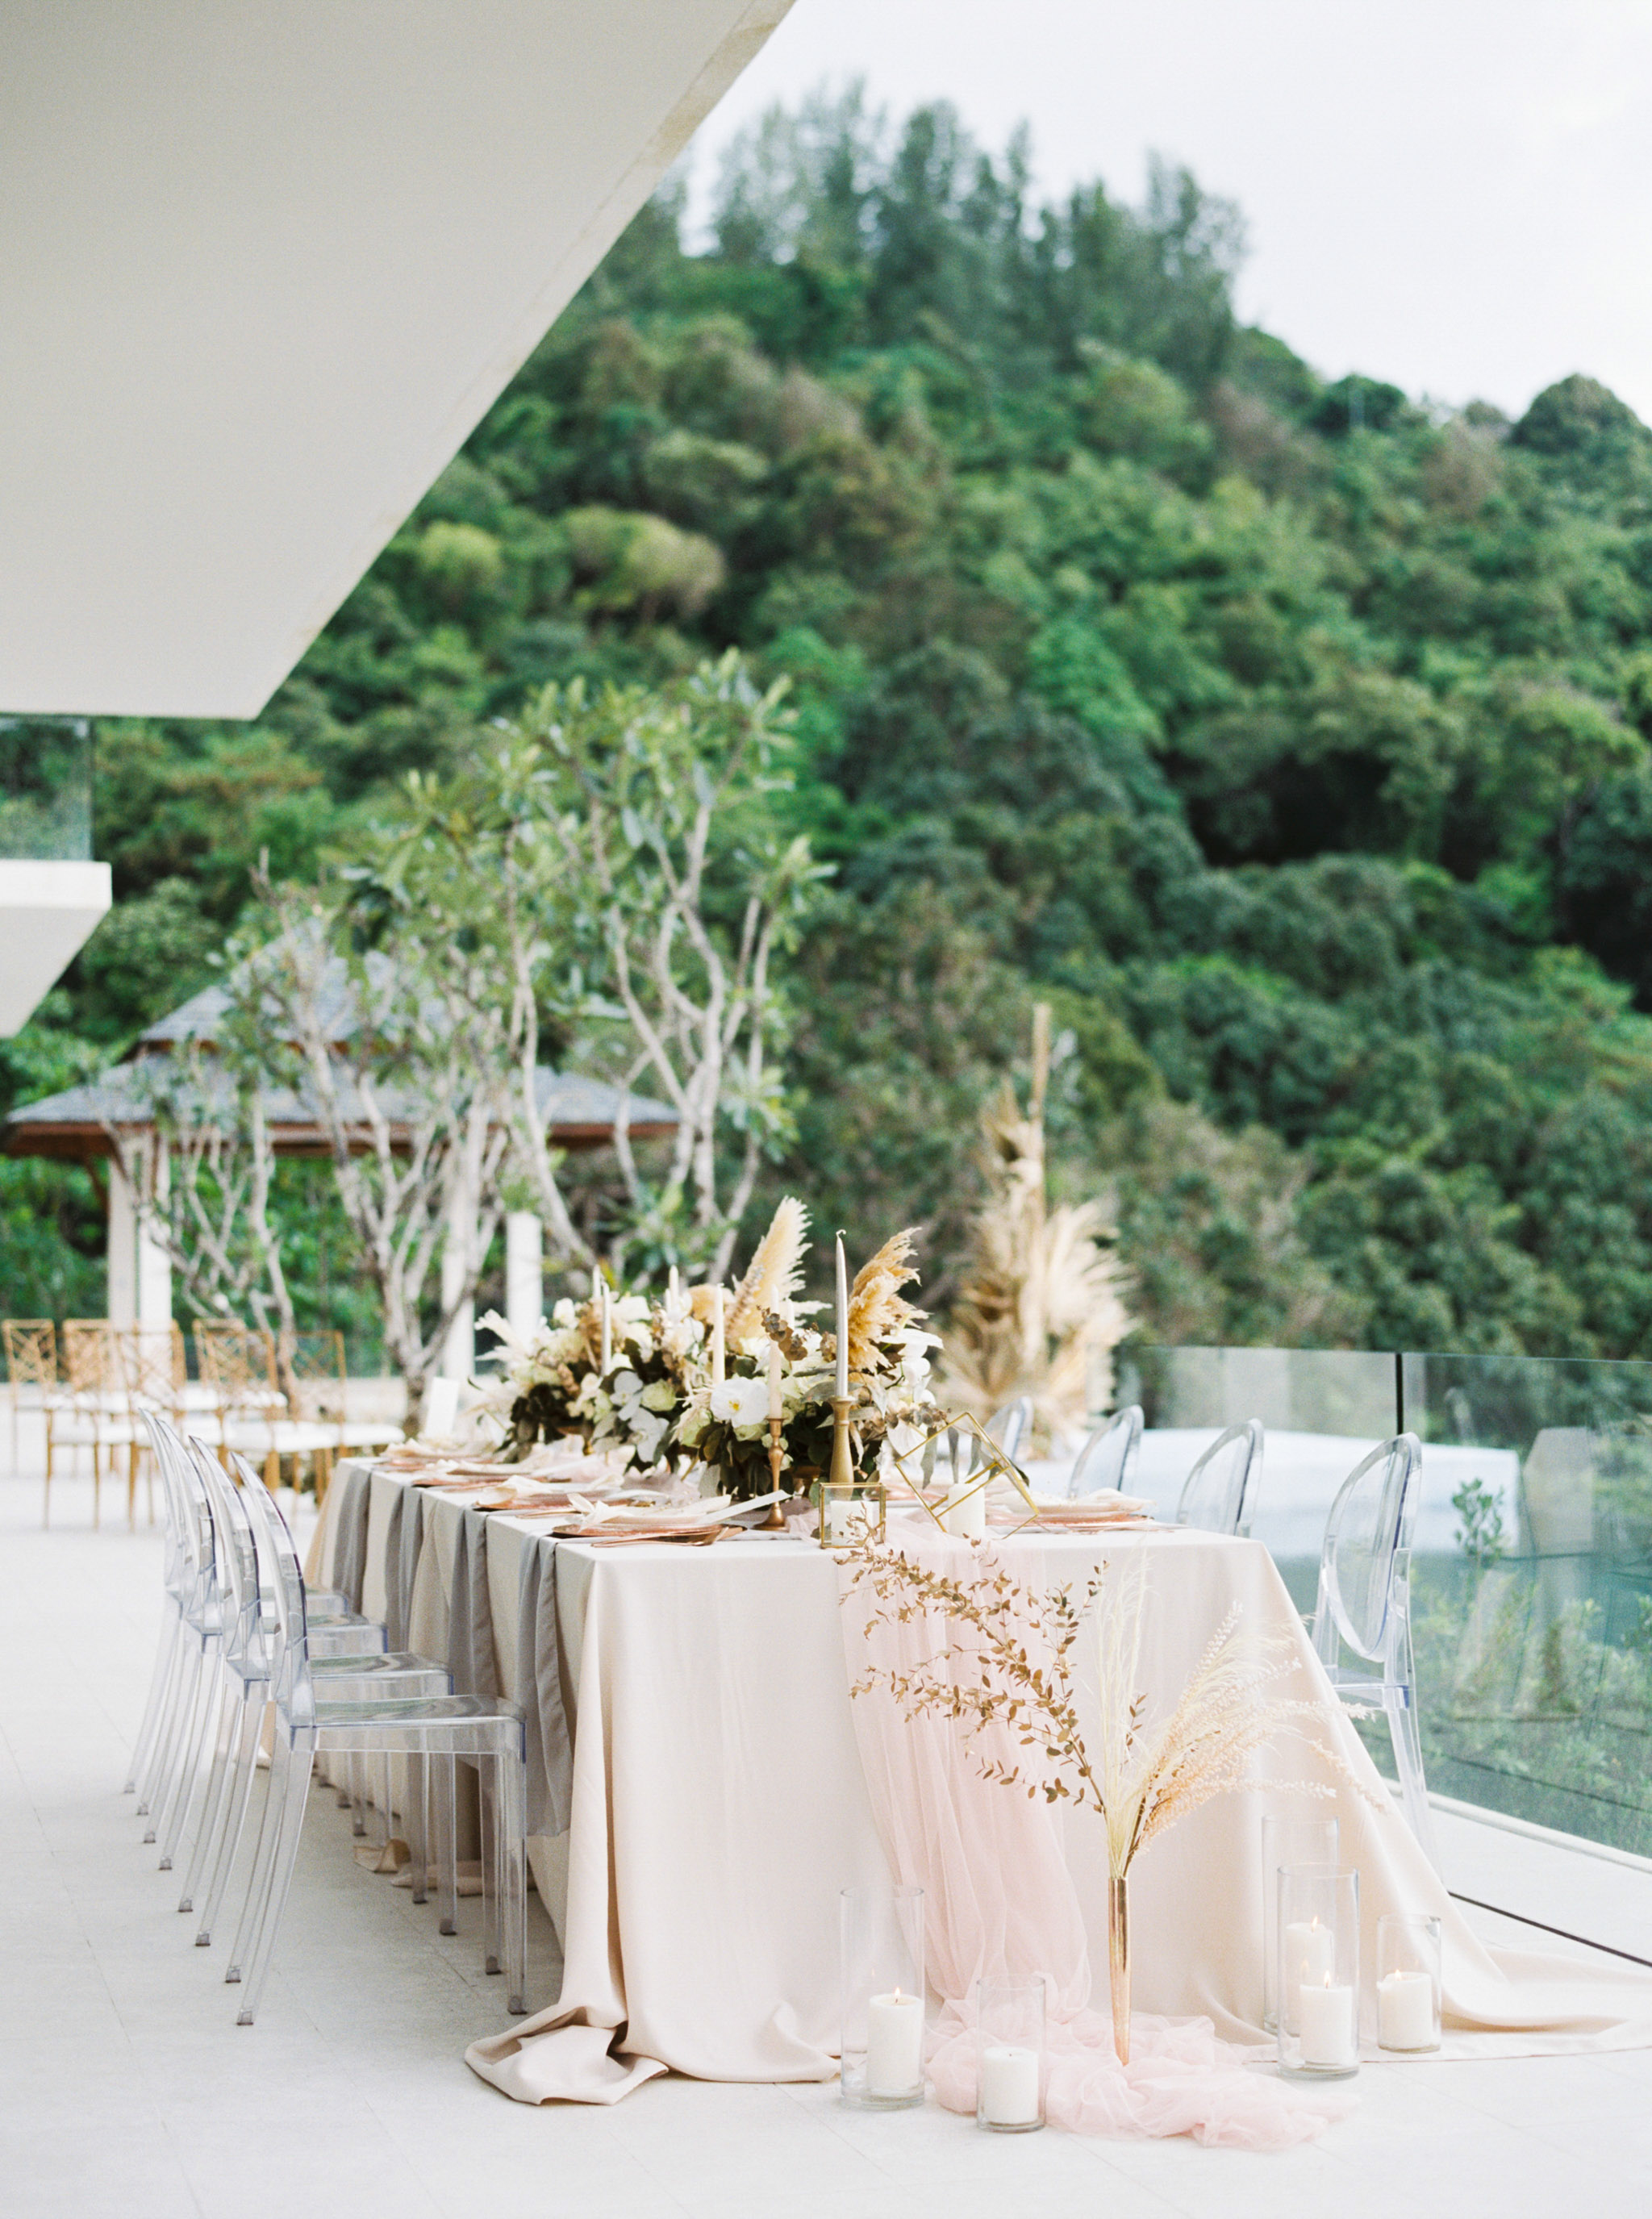 Destination Wedding at The Aquila Luxury Villas in Phuket Thailand Fine Art Film Wedding Photographer Sheri McMahon-00051-51.jpg